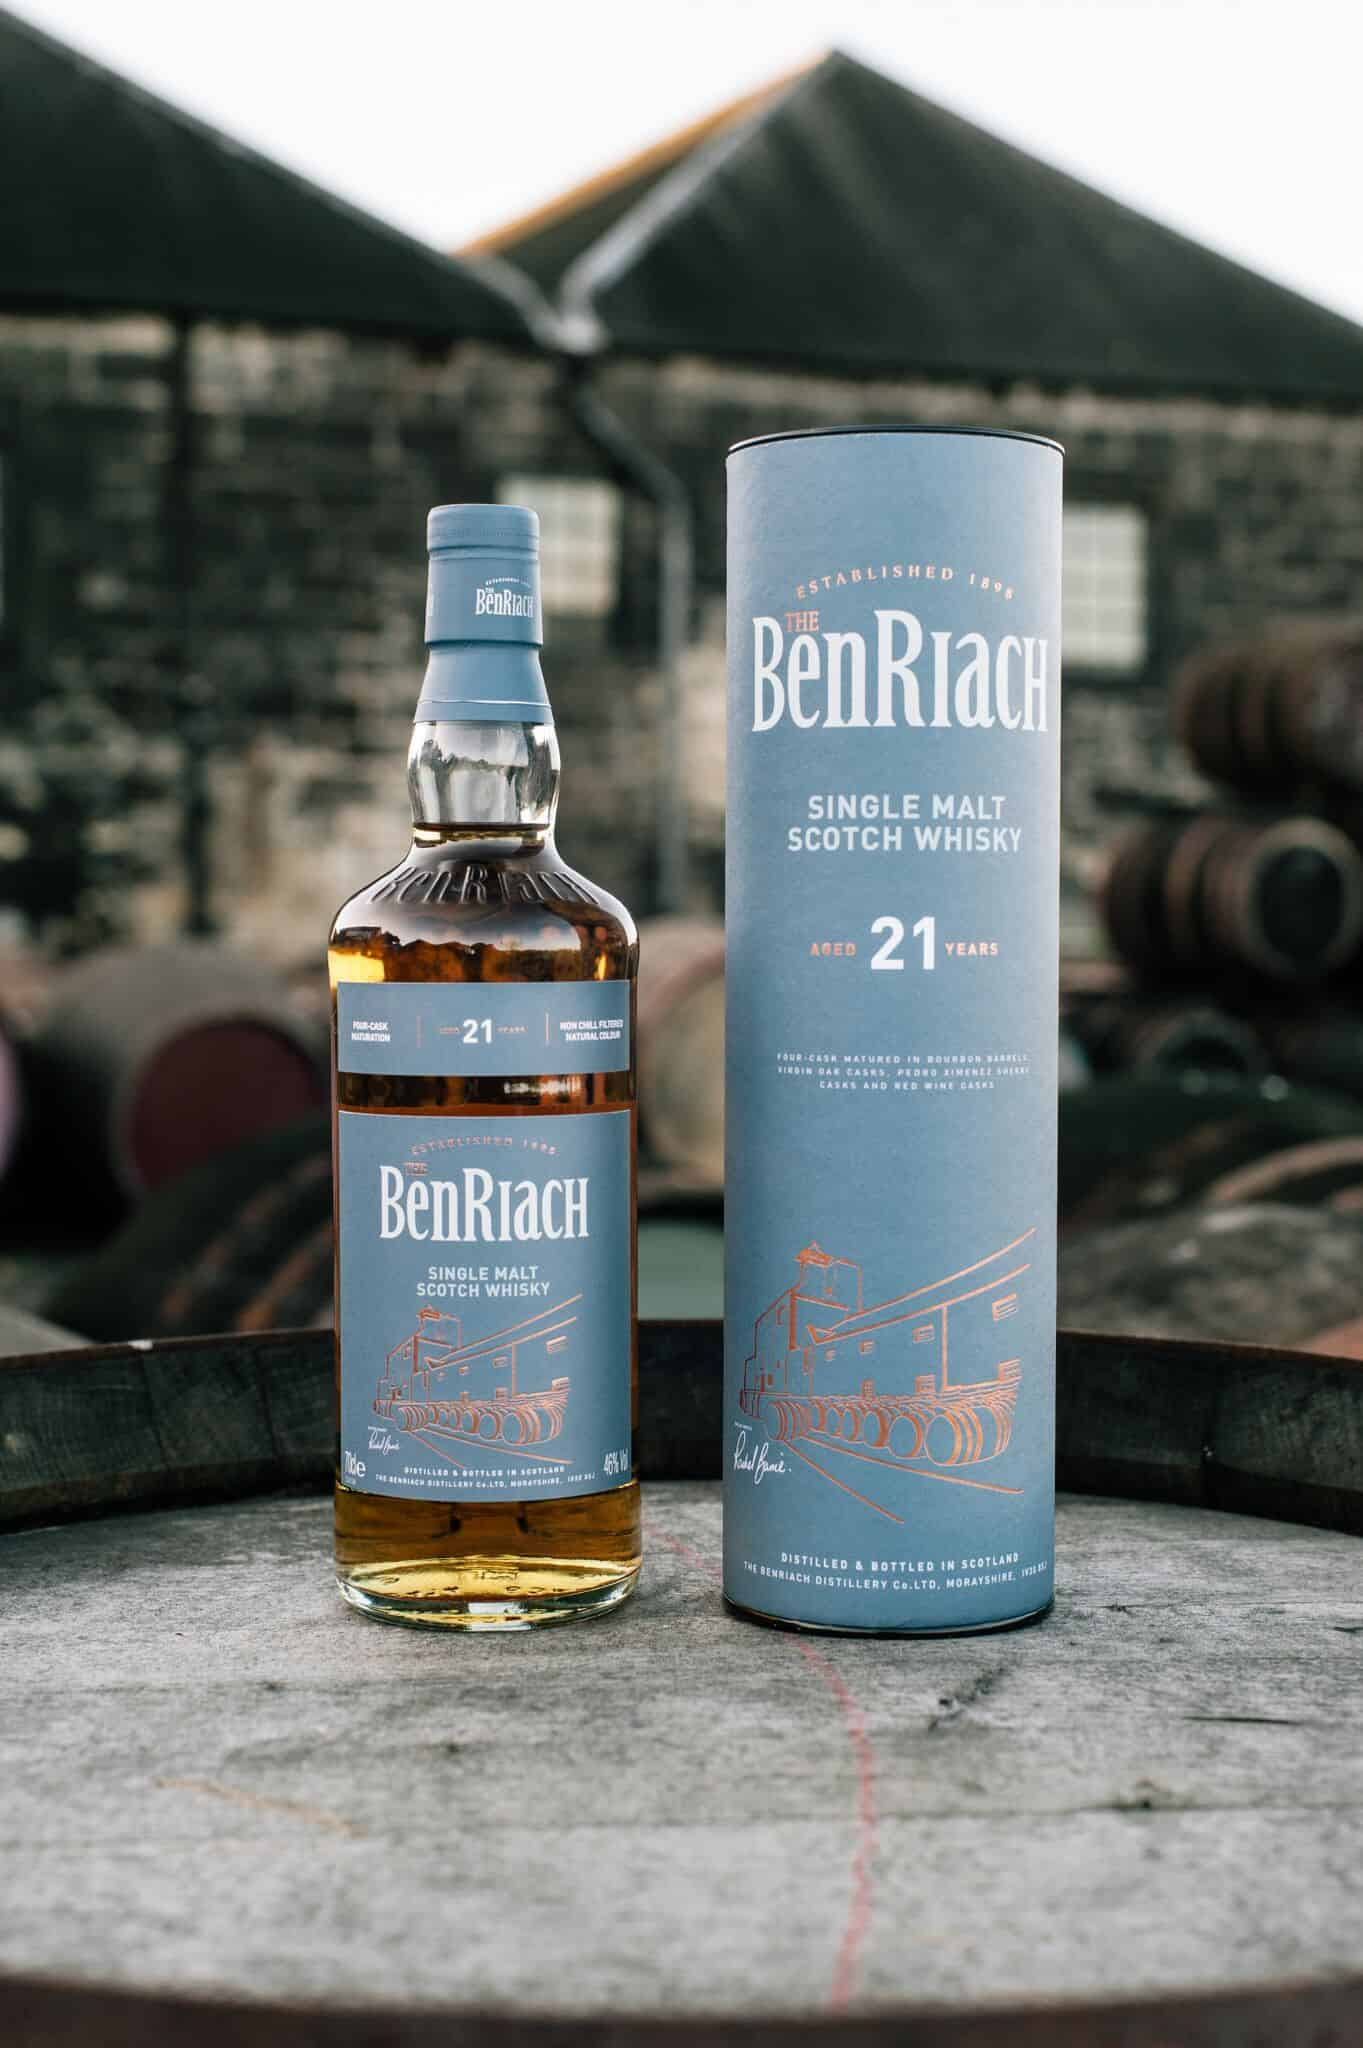 BenRiach Four Cask Matured